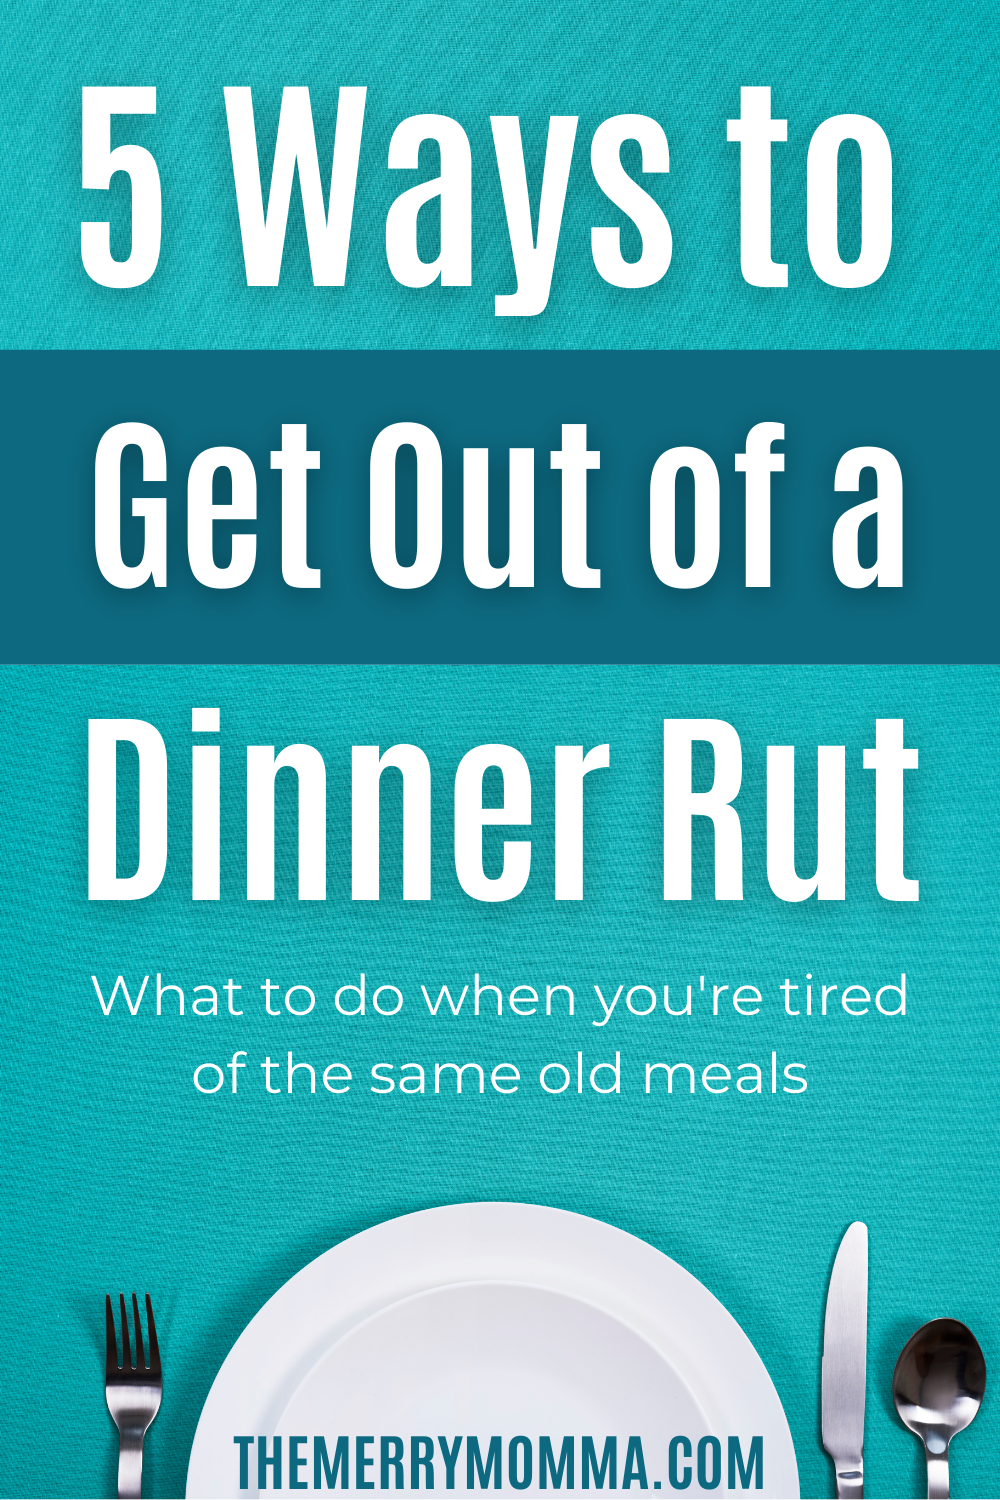 5 Ways to Get Out of a Dinner Rut (Pin image)